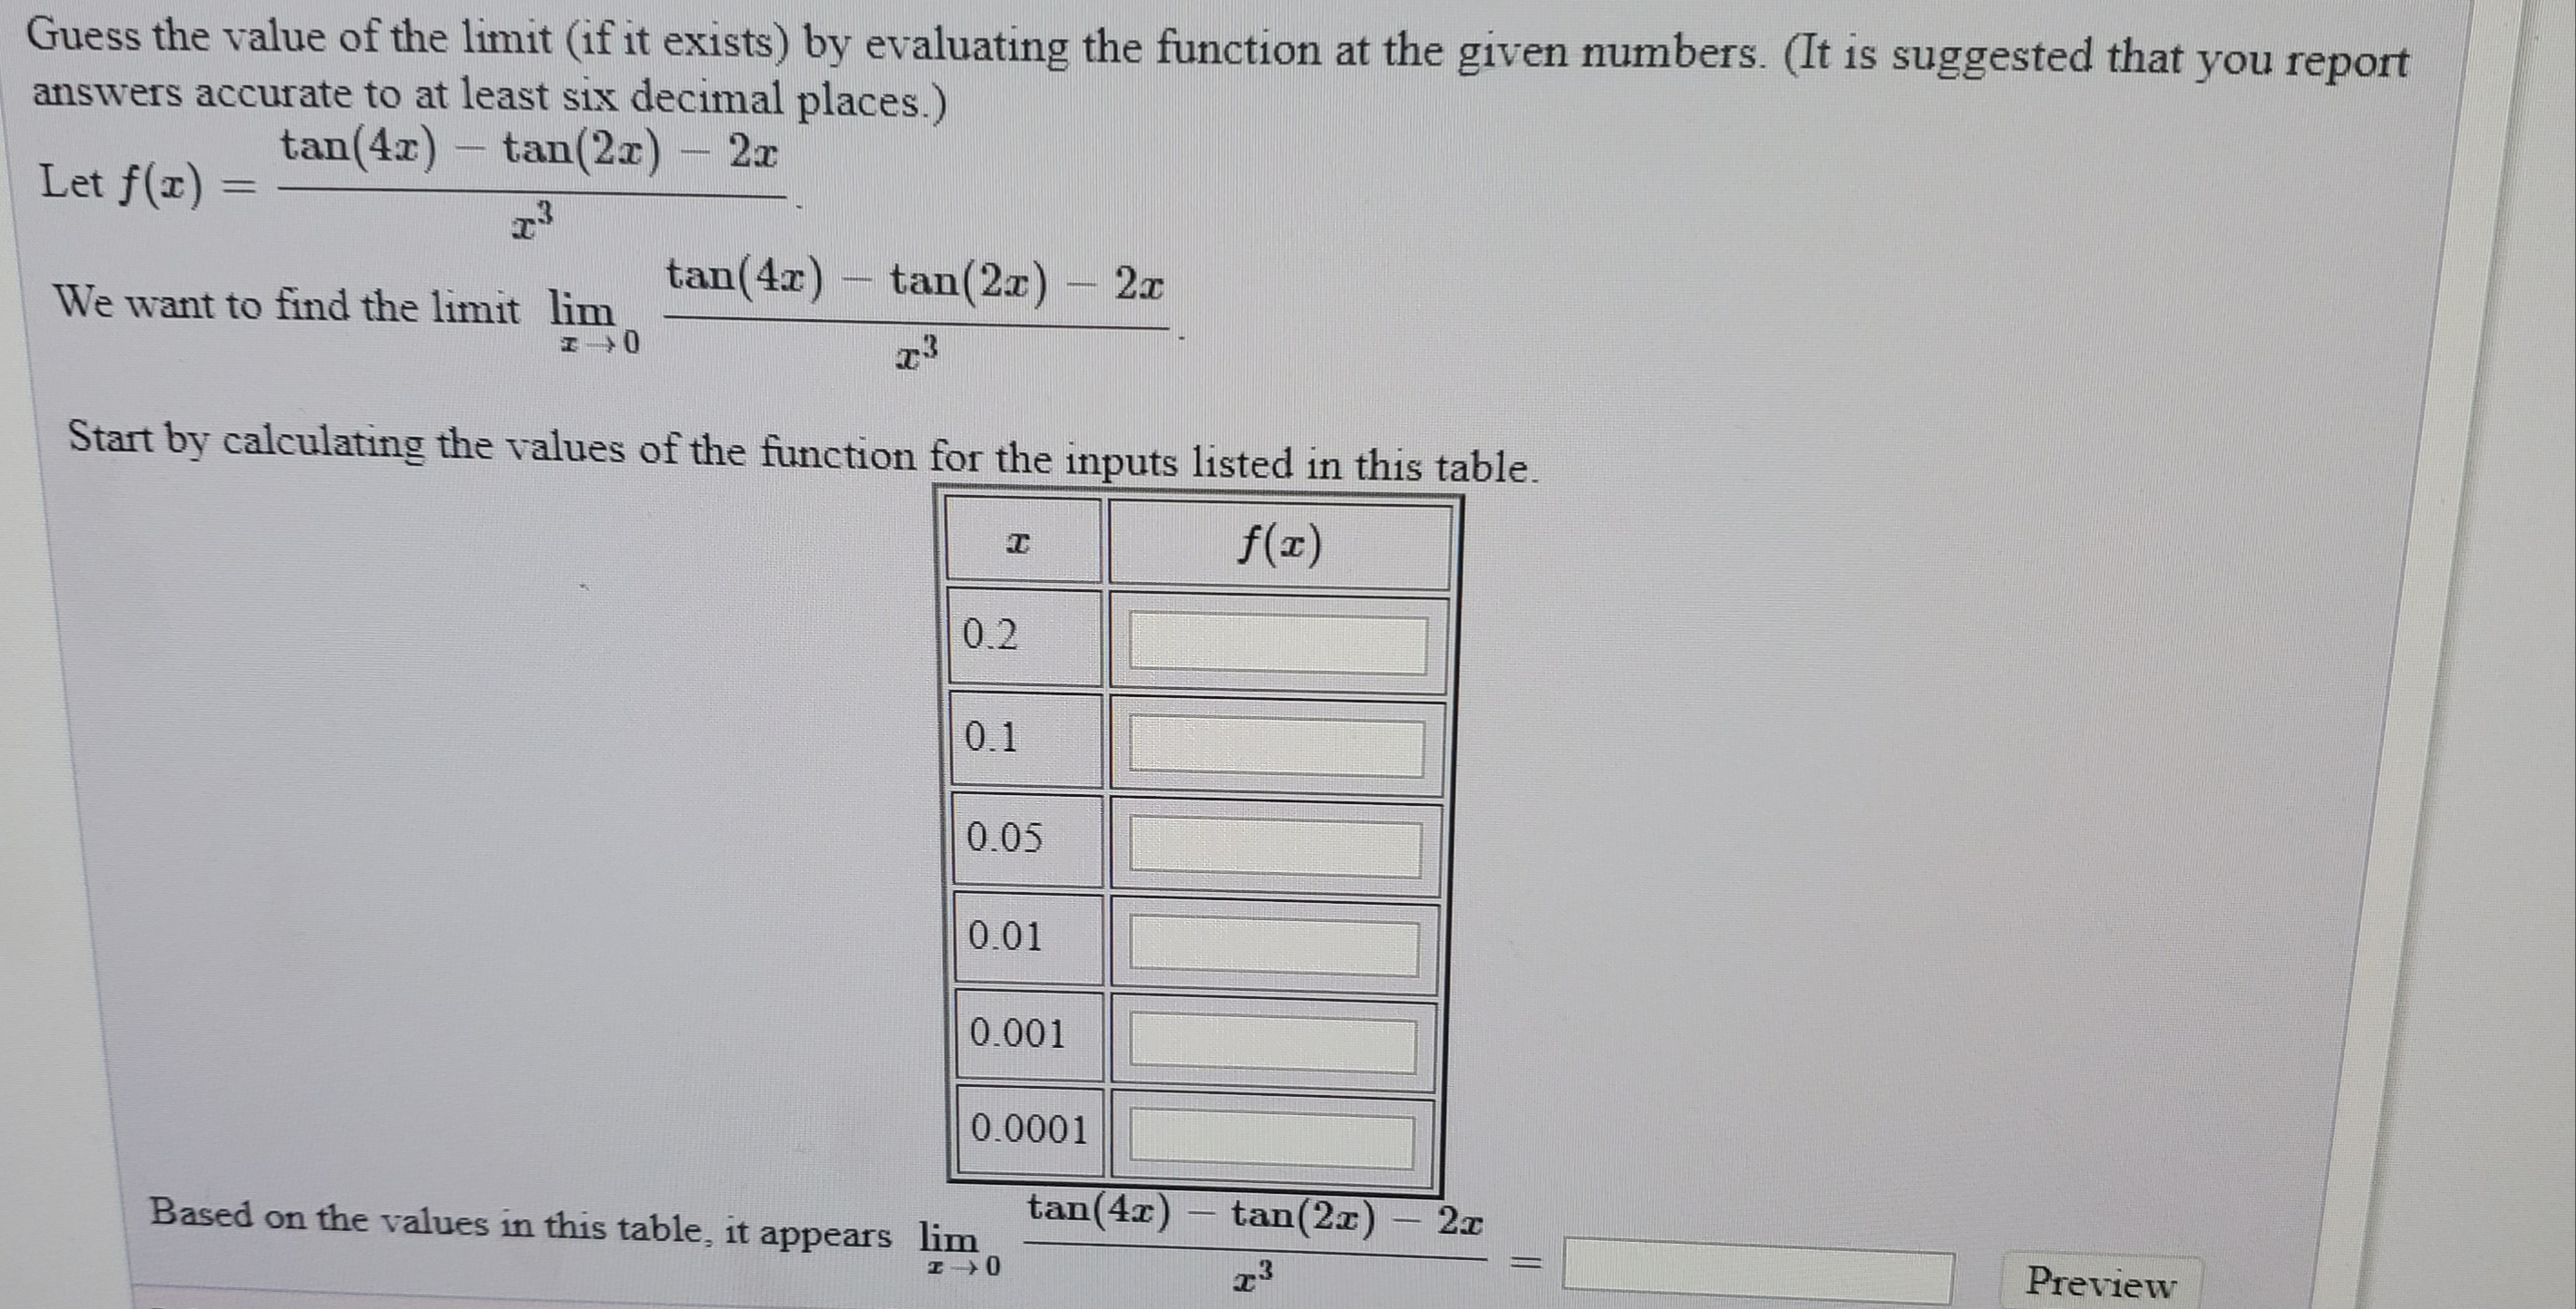 Guess the value of the limit (if it exists) by evaluating the function at the given numbers. (It is suggested that you report answers accurate to at least six decimal places.) tan(4r) – tan(2x) - 2x Let f(x) = tan(4x) tan(2x) - 2x – We want to find the limit lim Start by calculating the values of the function for the inputs listed in this table. f(x) 0.2 0.1 0.05 0.01 0.001 0.0001 tan(4x) tan(2x) - 2 Based on the values in this table, it appears lim Preview %3D